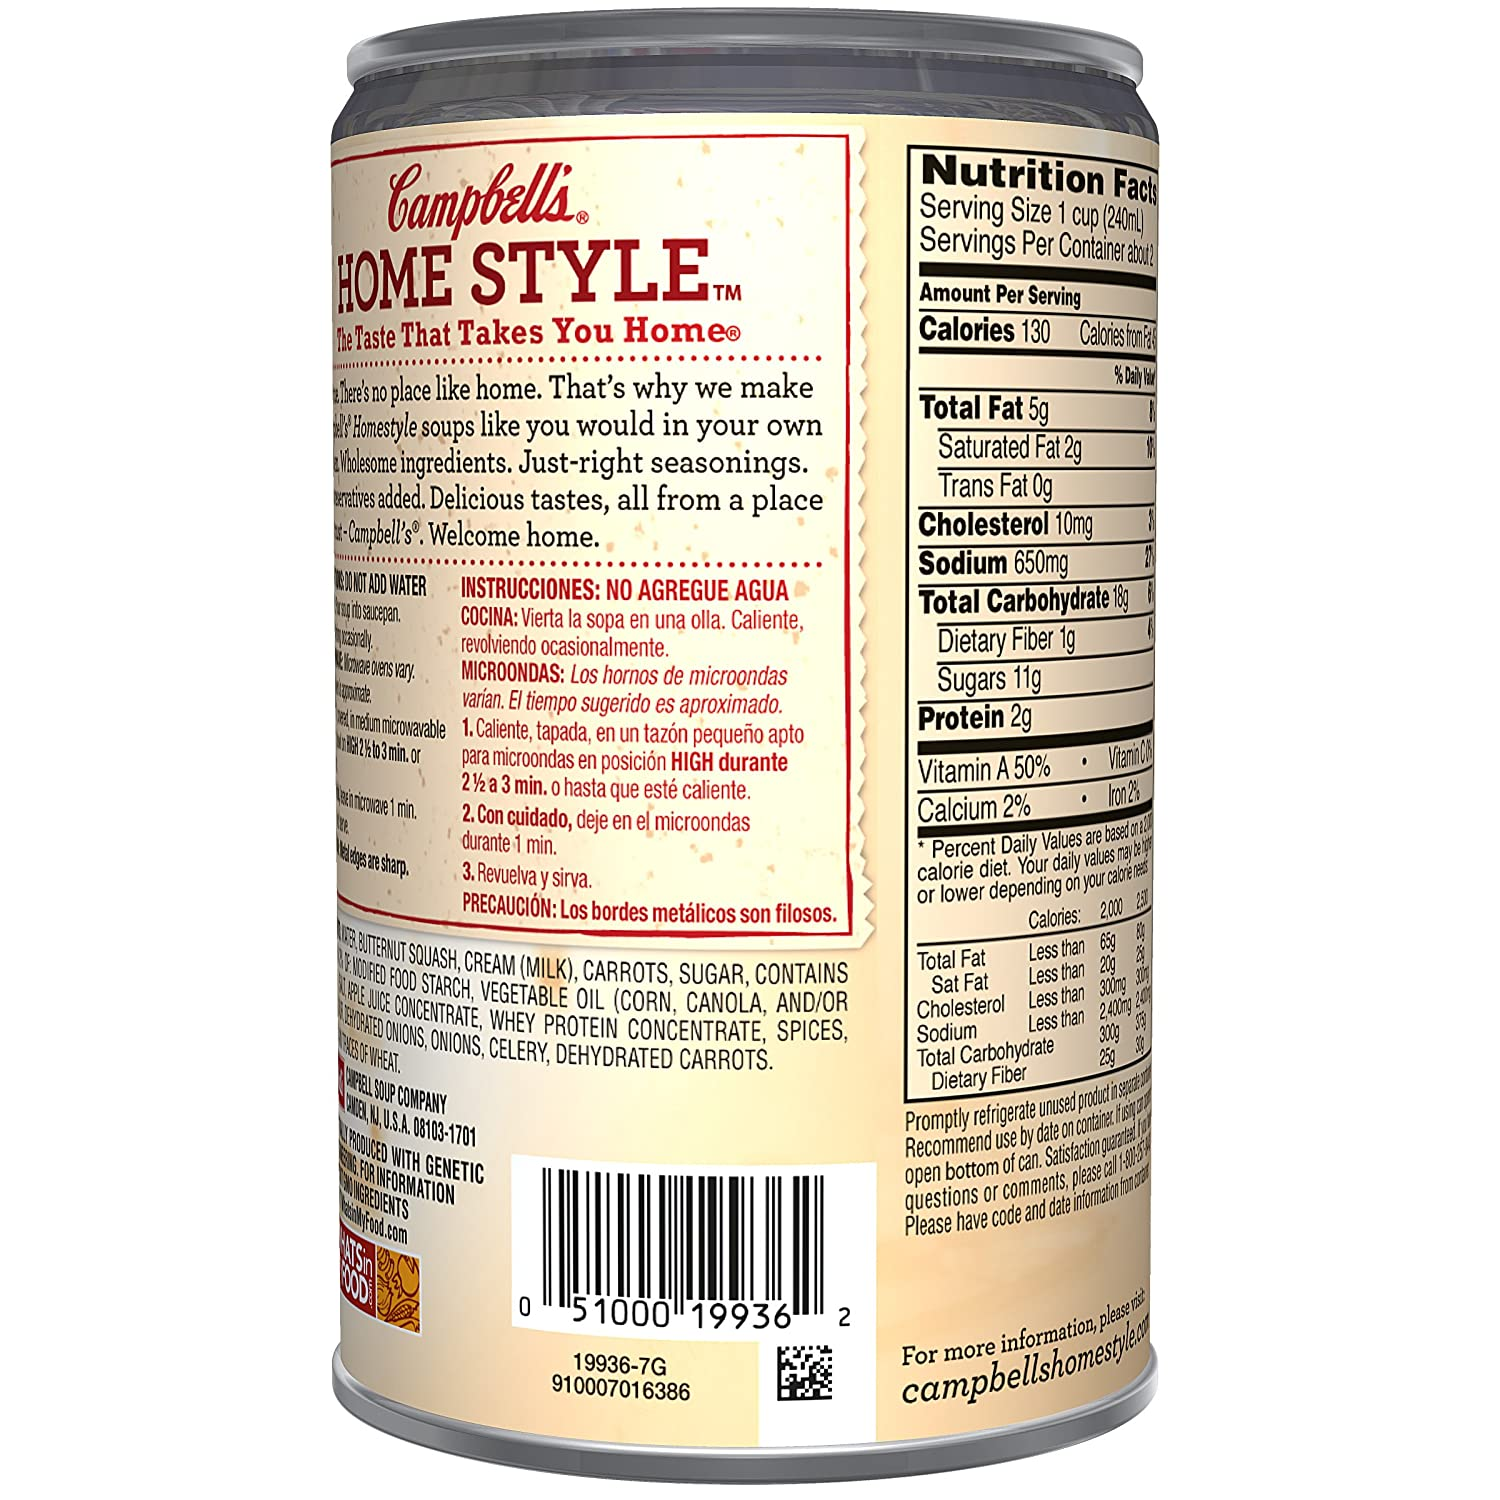 Amazon.com : Campbells Homestyle Soup, Butternut Squash Bisque, 18.8 Ounce : Grocery & Gourmet Food